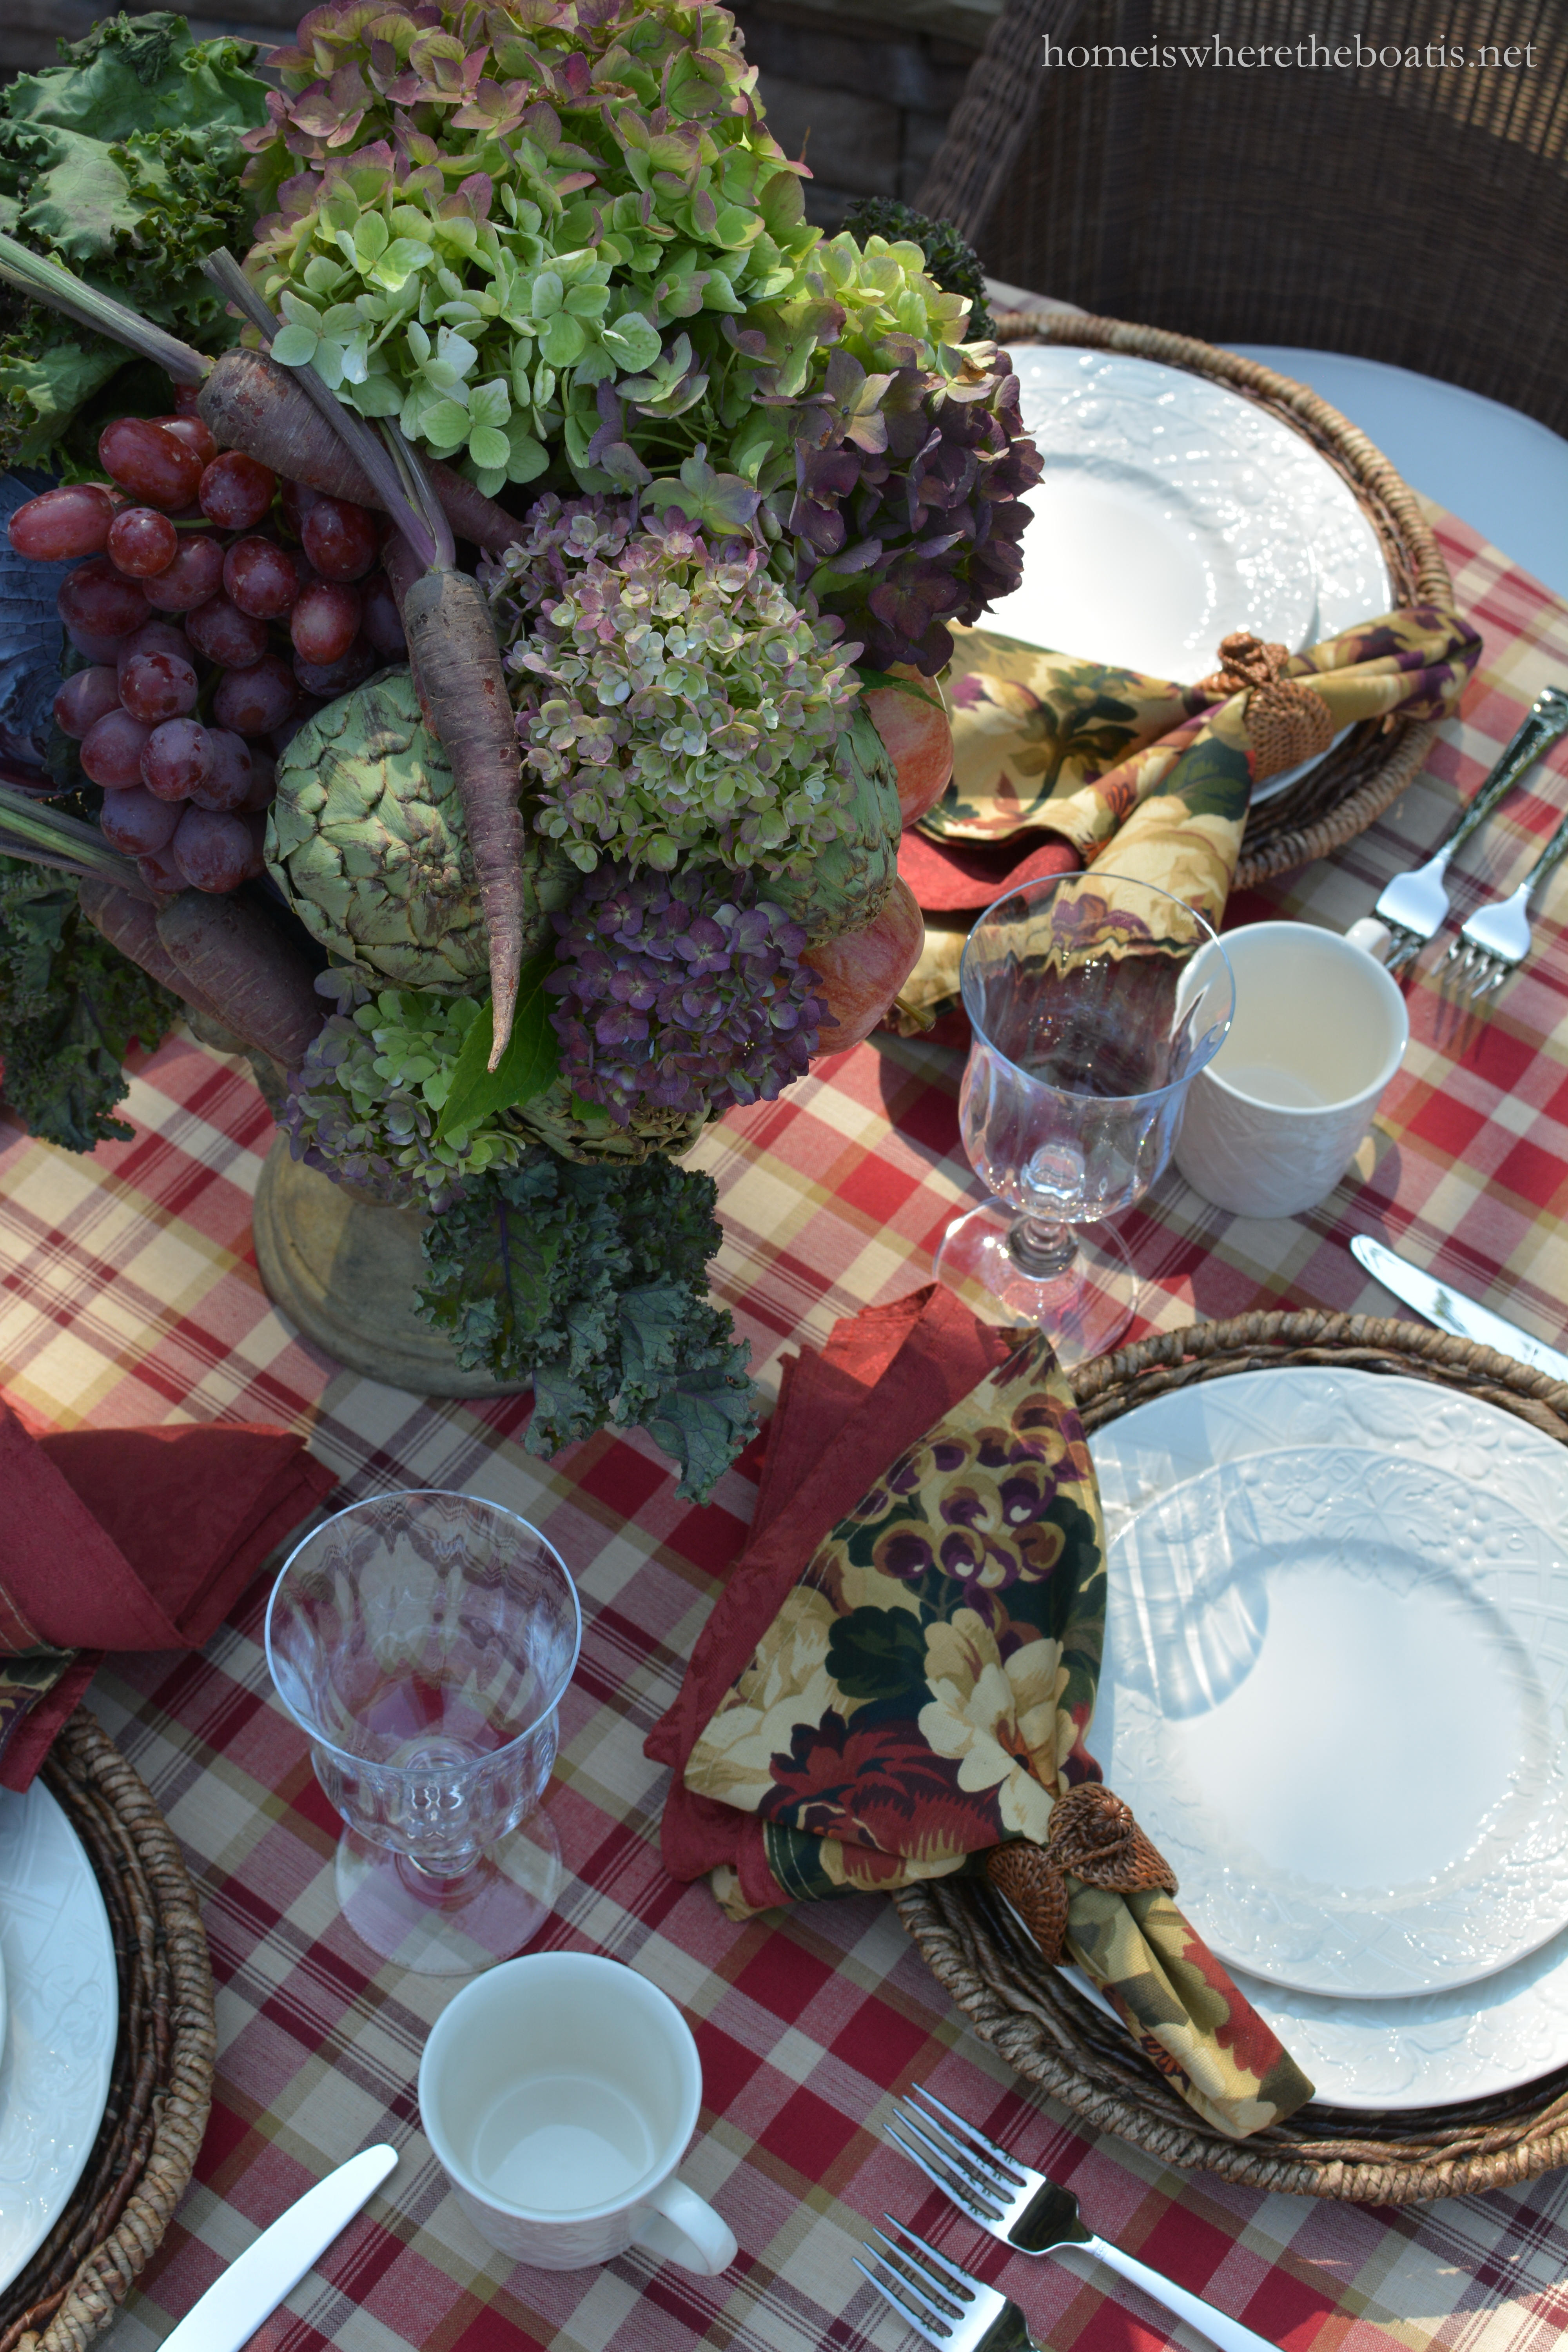 Mikasa English Countryside flatware handles feature a lattice motif and bands of beading for a textured surface. & A Fruit and Vegetable Centerpiece and Mikasa English Countryside ...